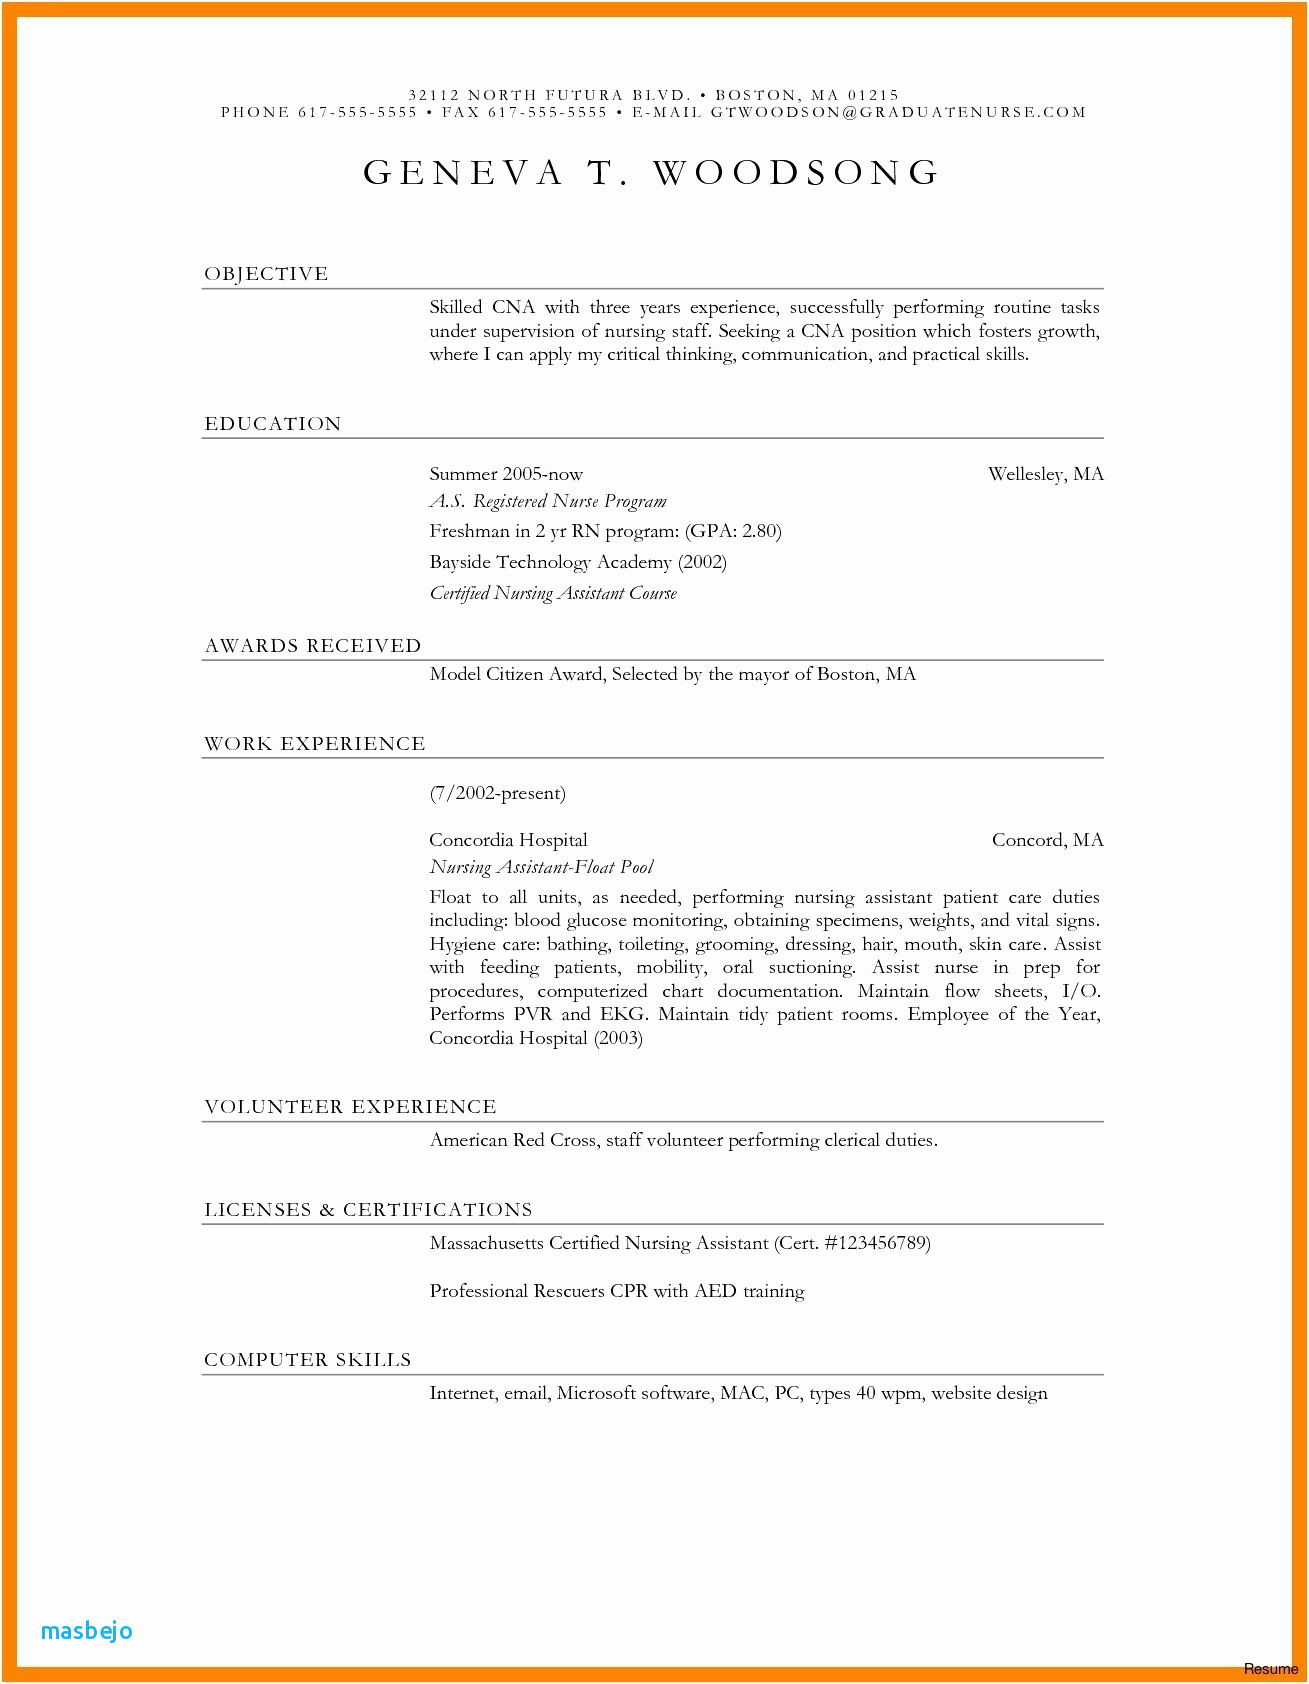 Substitute Teacher Duties Resume - Substitute Teacher Duties Resume Elegant Resumes for Substitute